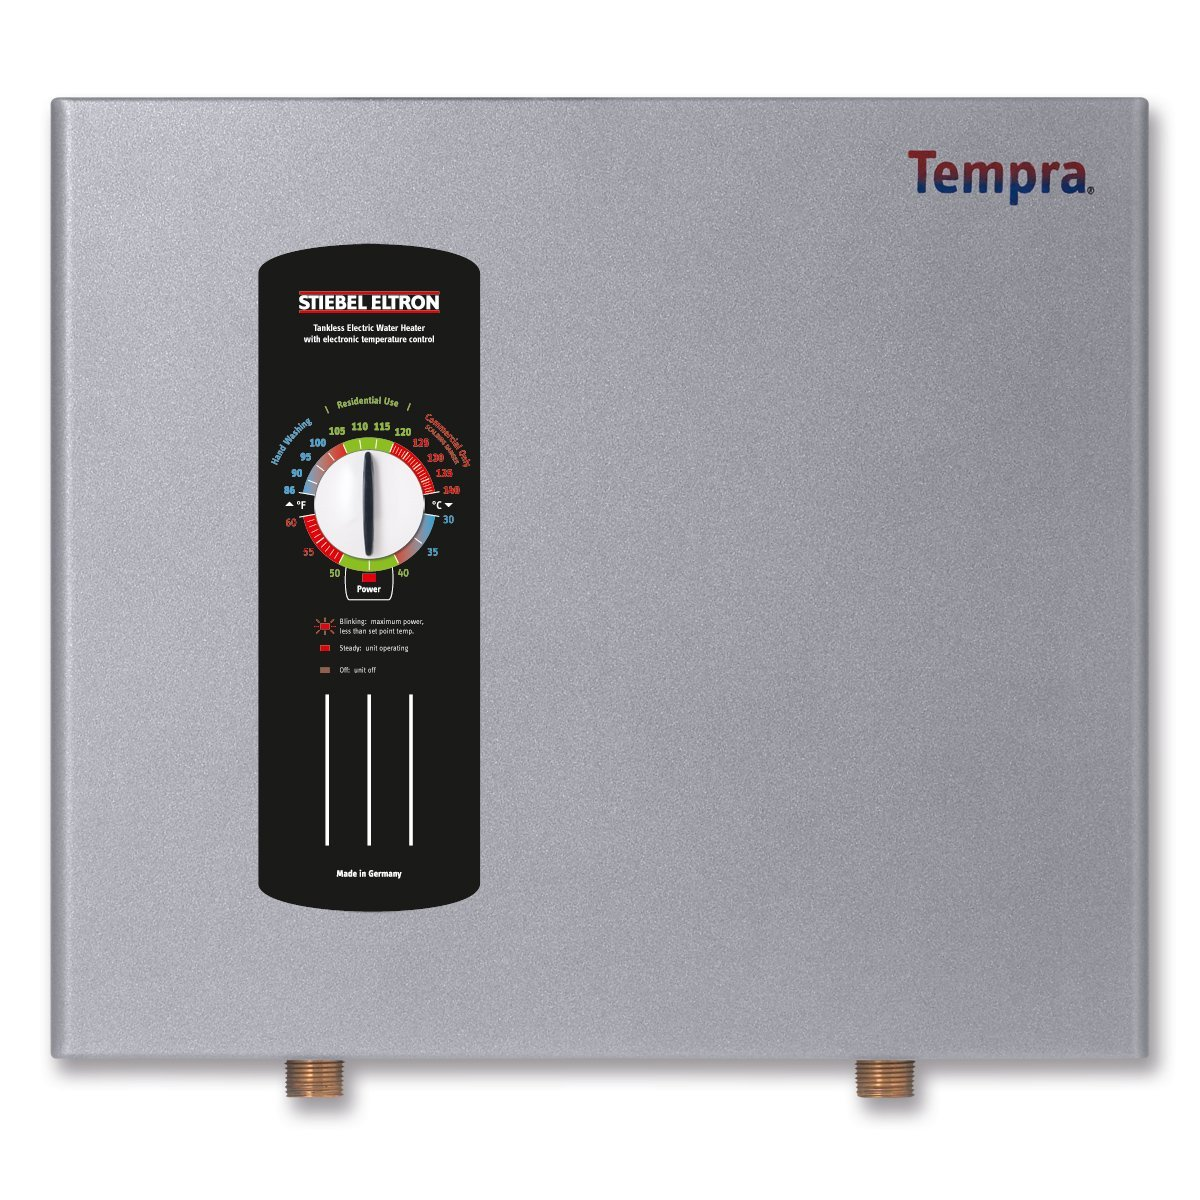 Tempra 12 kW Electric Heater